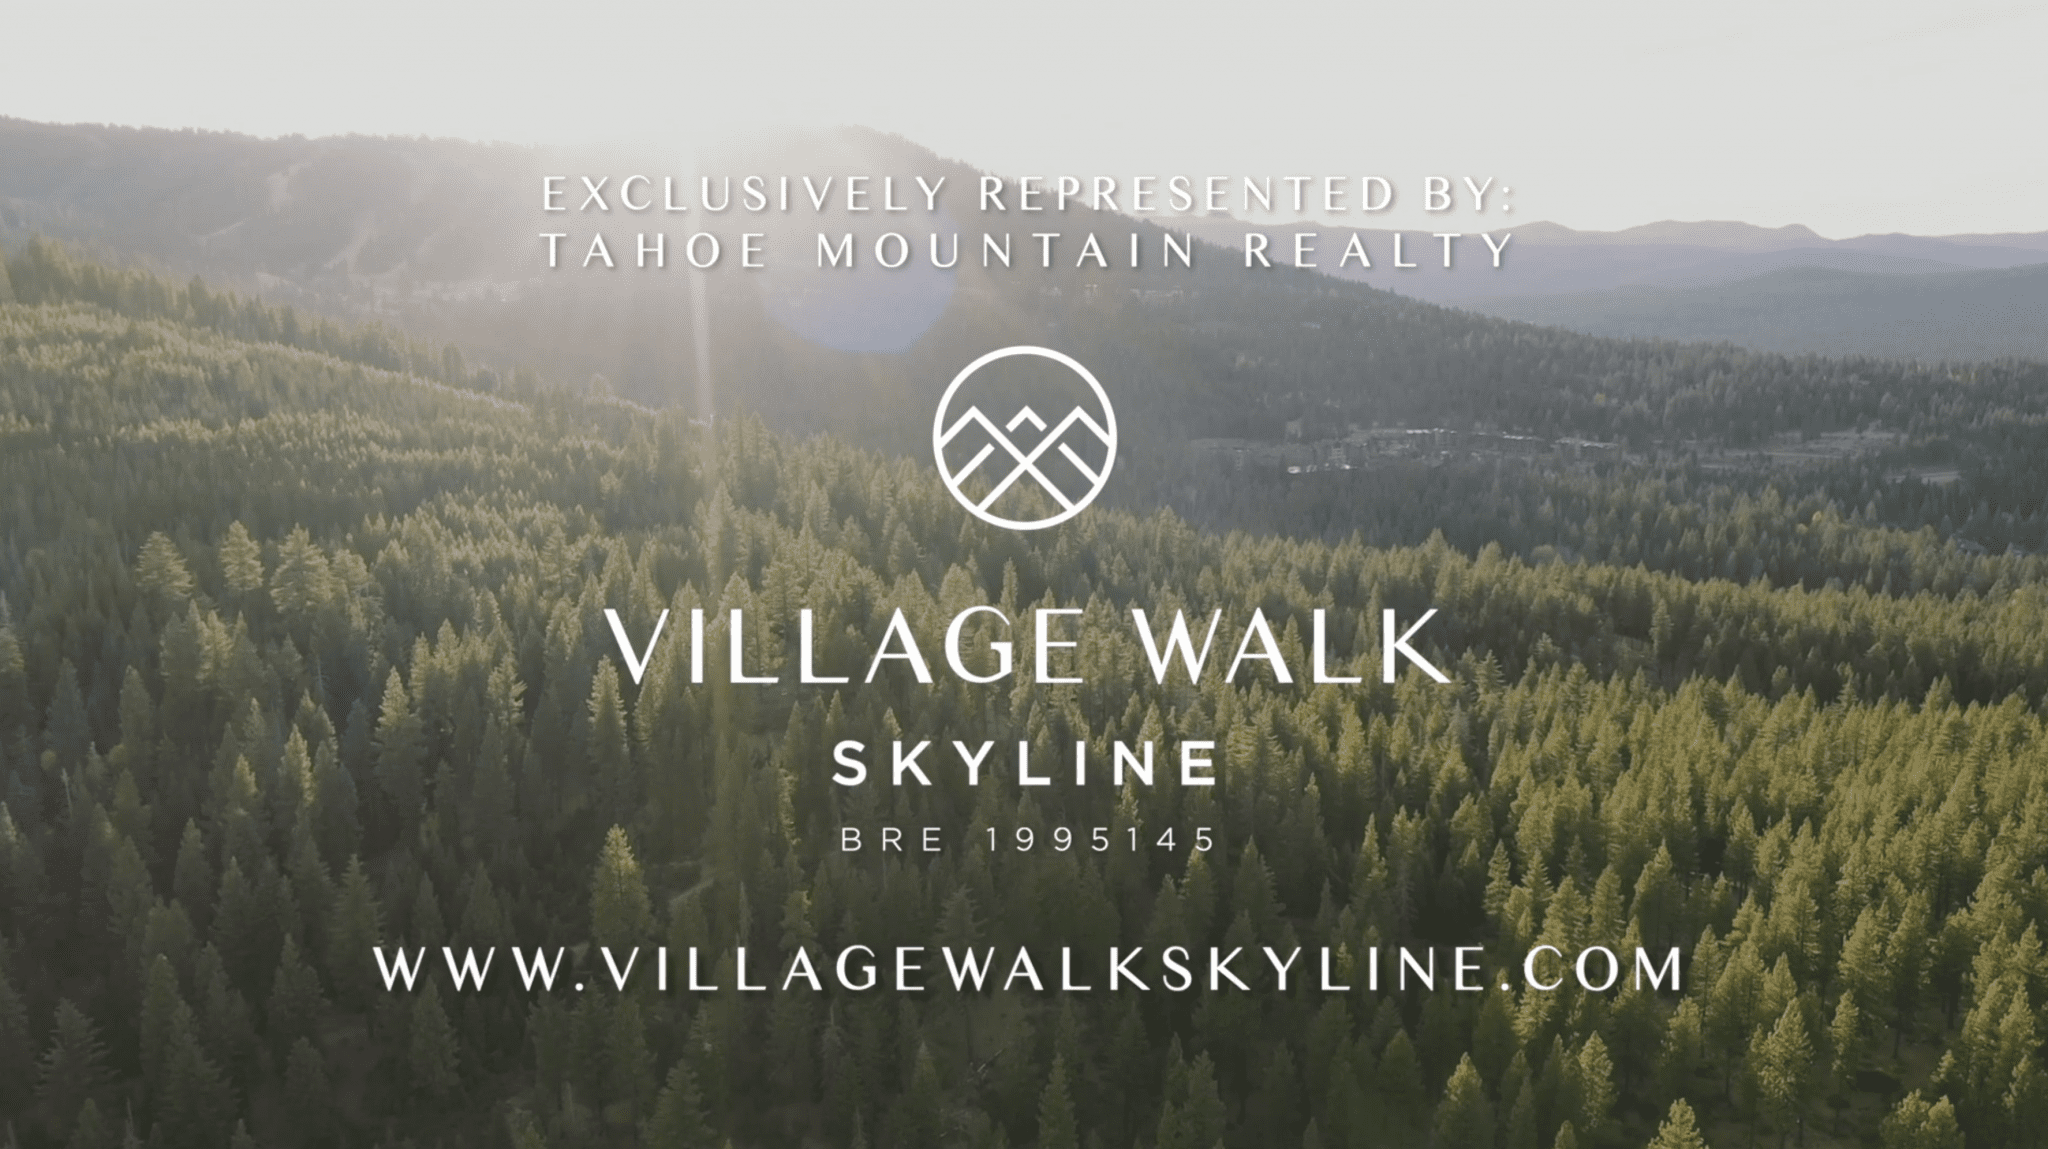 Mabble Media - Creative Agency | Village Walk Skyline Video Screenshot